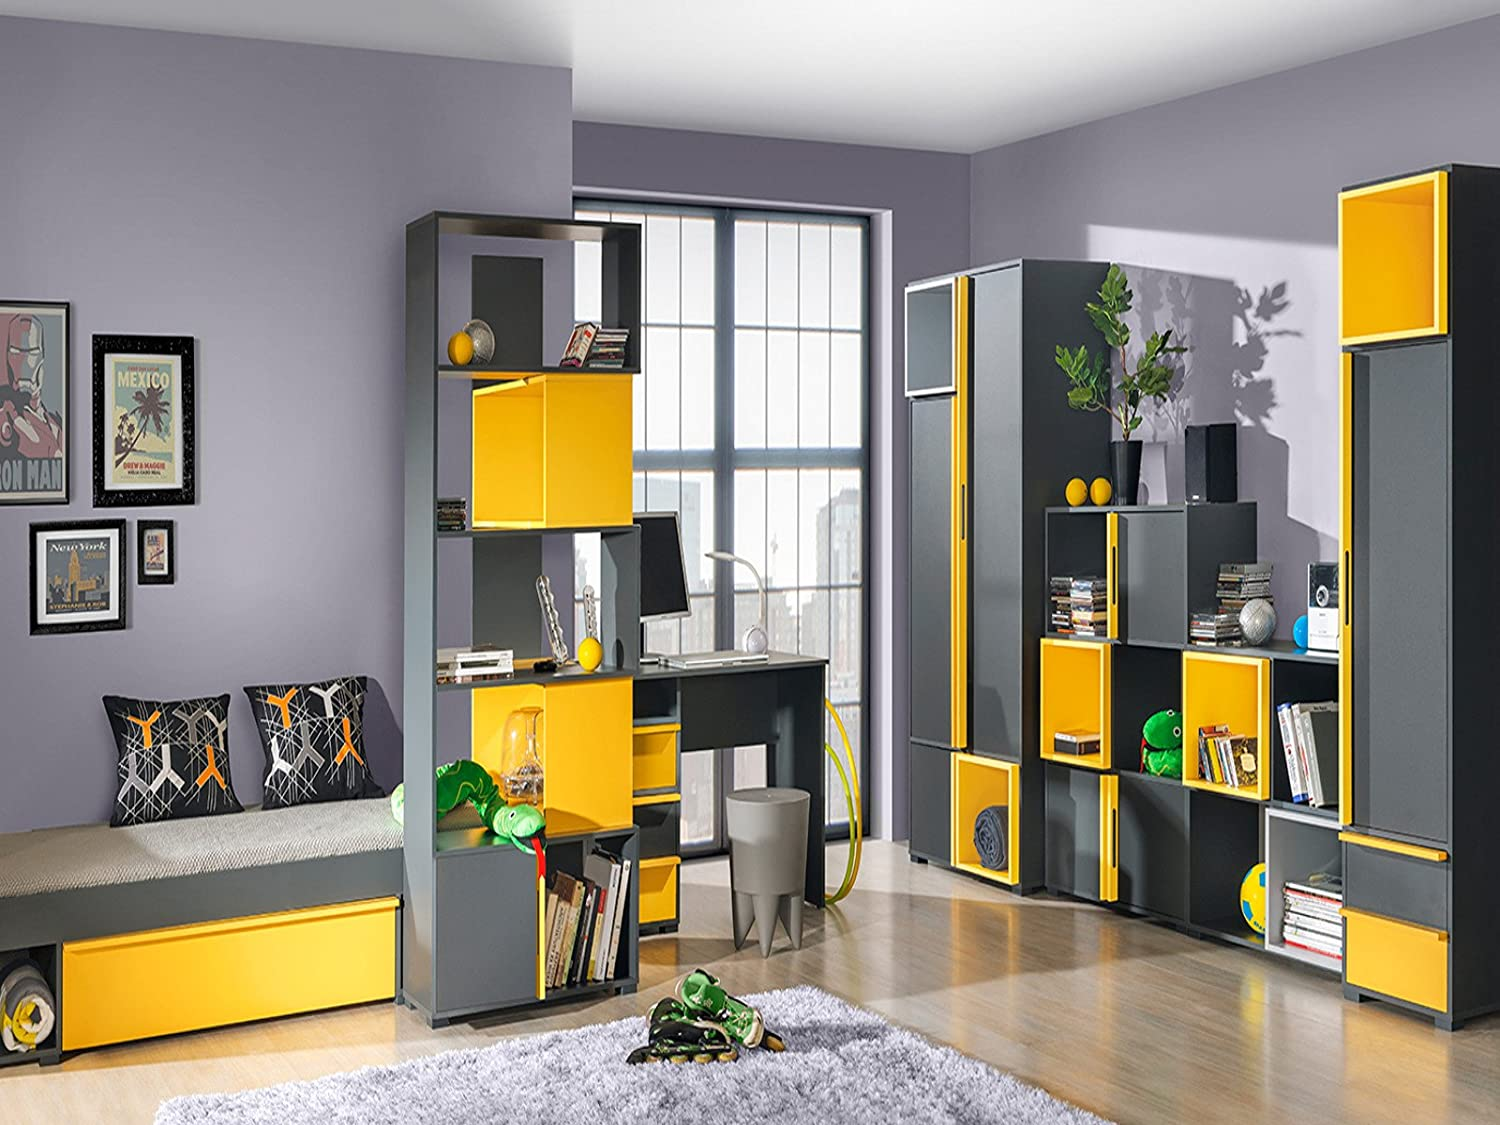 jugendzimmer f r m dchen jungen bico 05 7 tlg anthrazit gelb kaufen. Black Bedroom Furniture Sets. Home Design Ideas